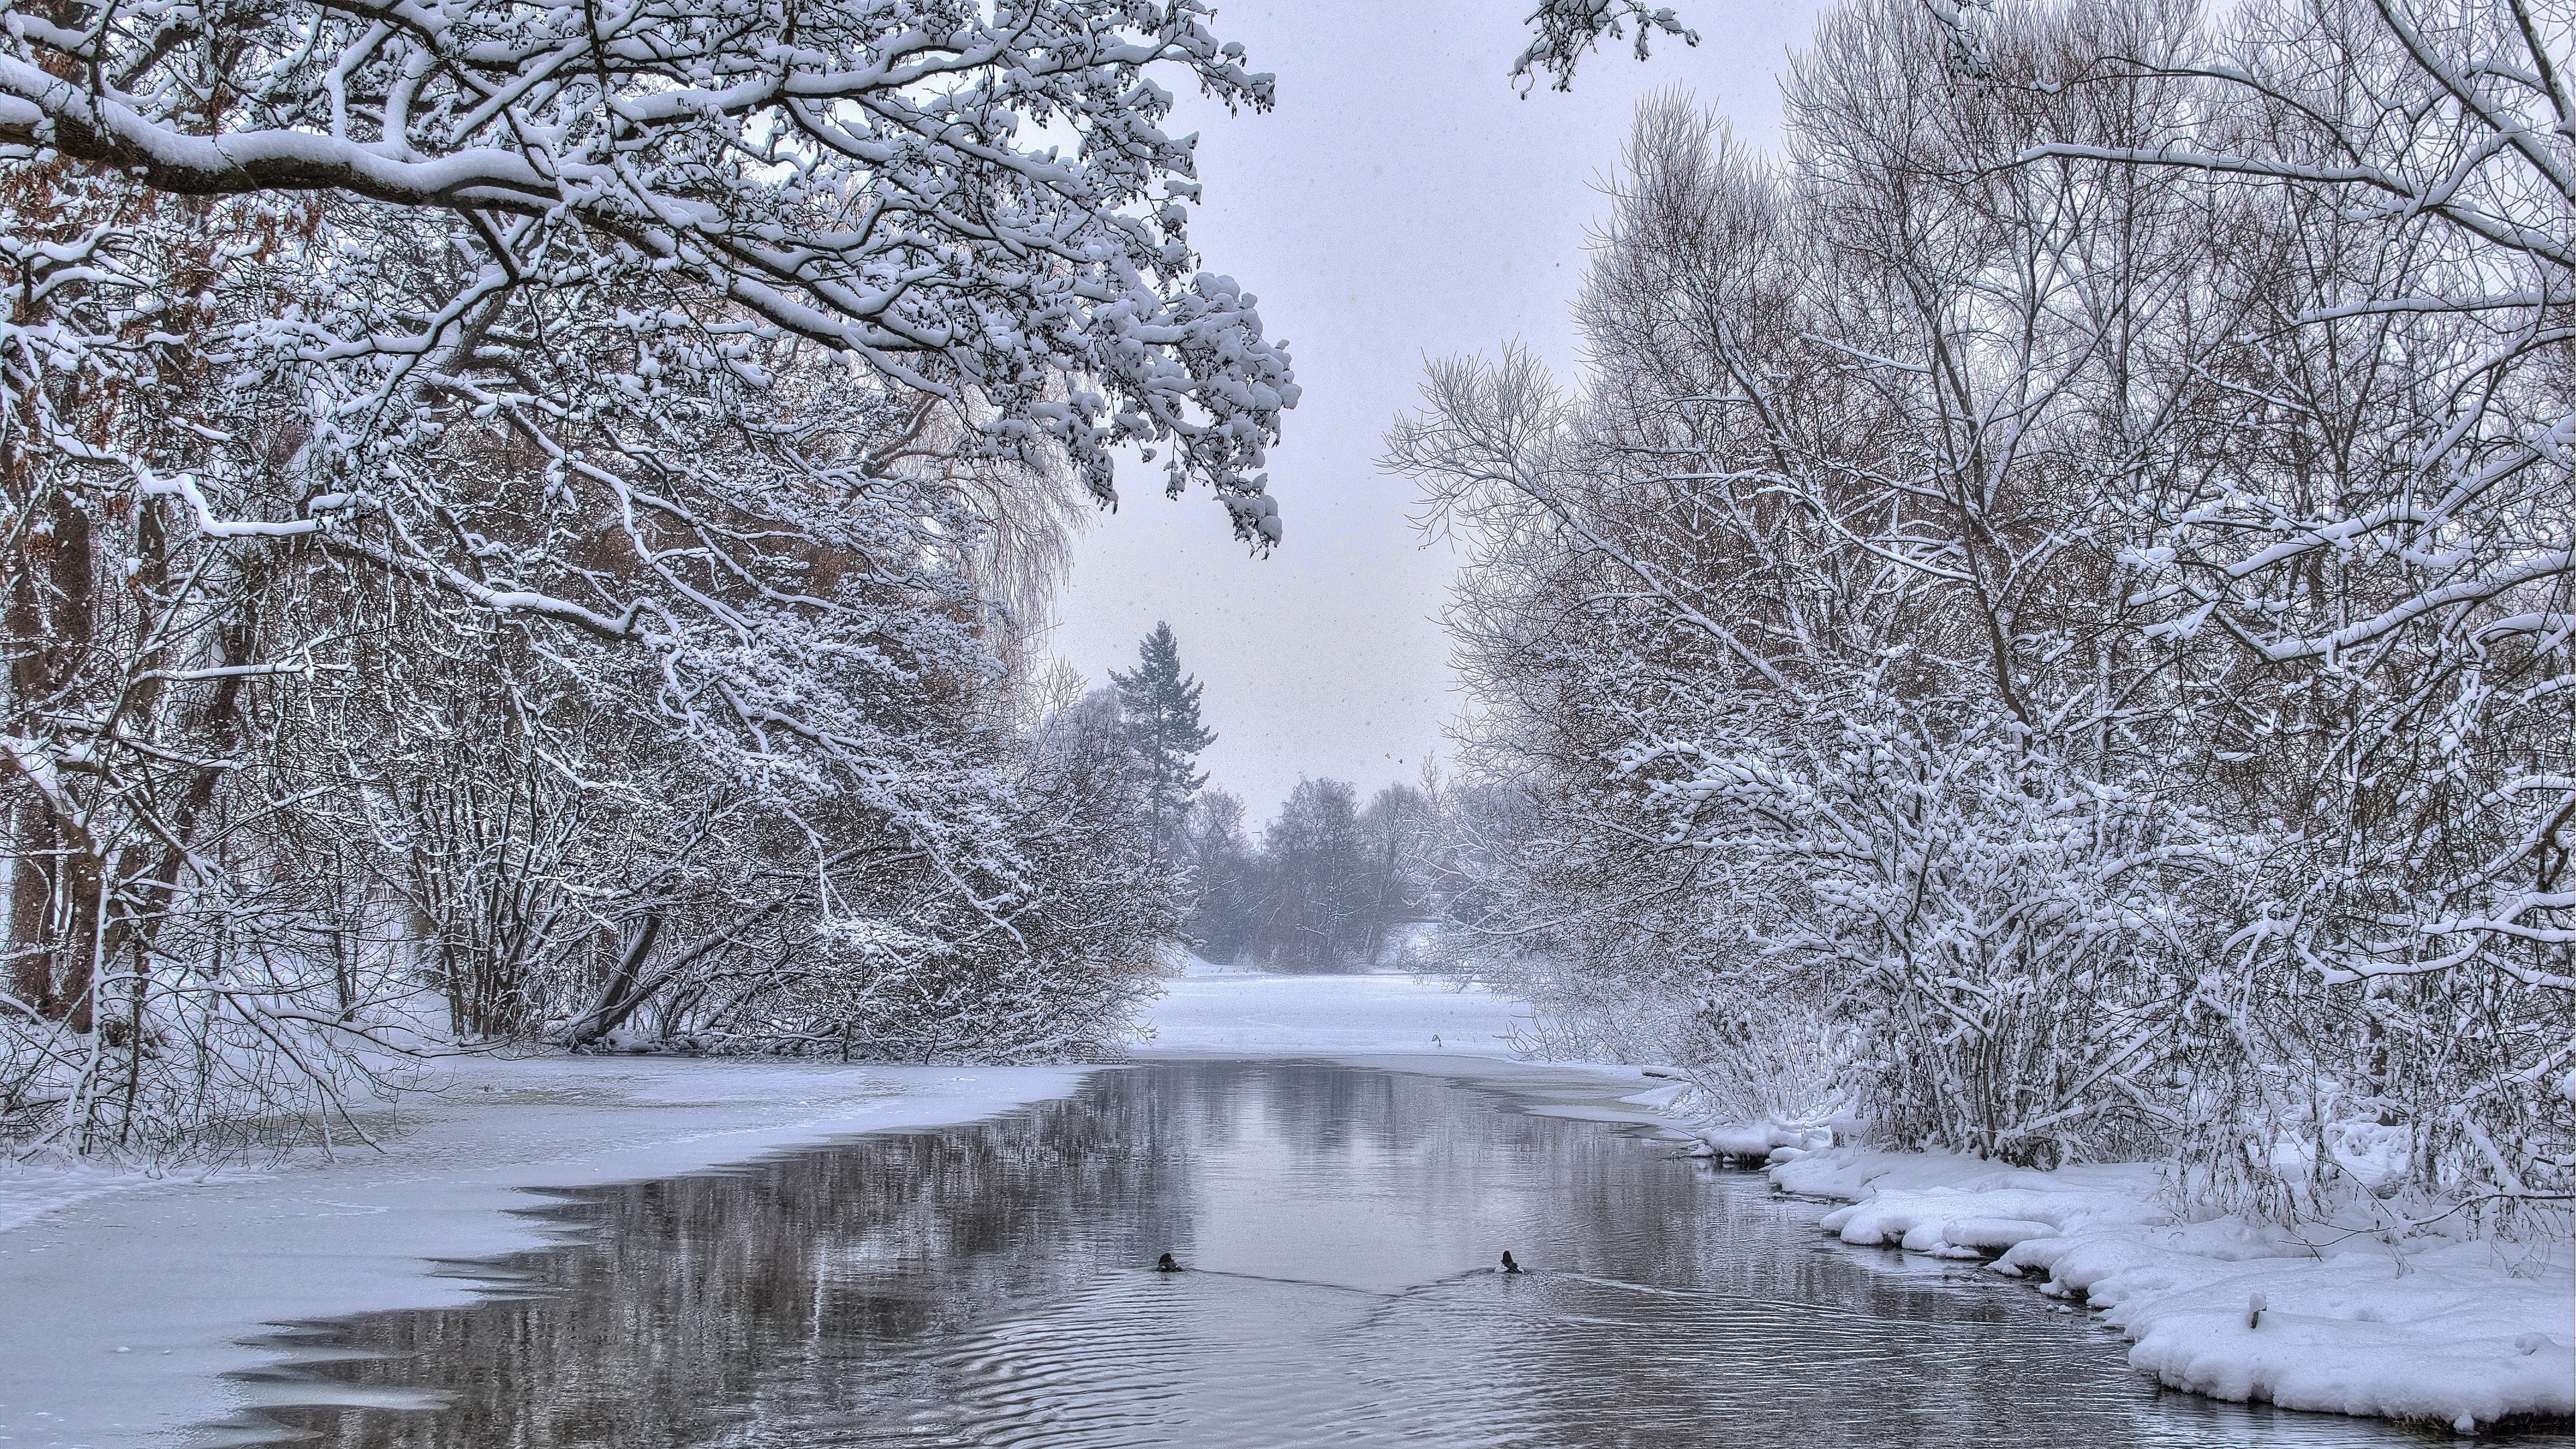 Winter Scene Desktop Background (56+ Images